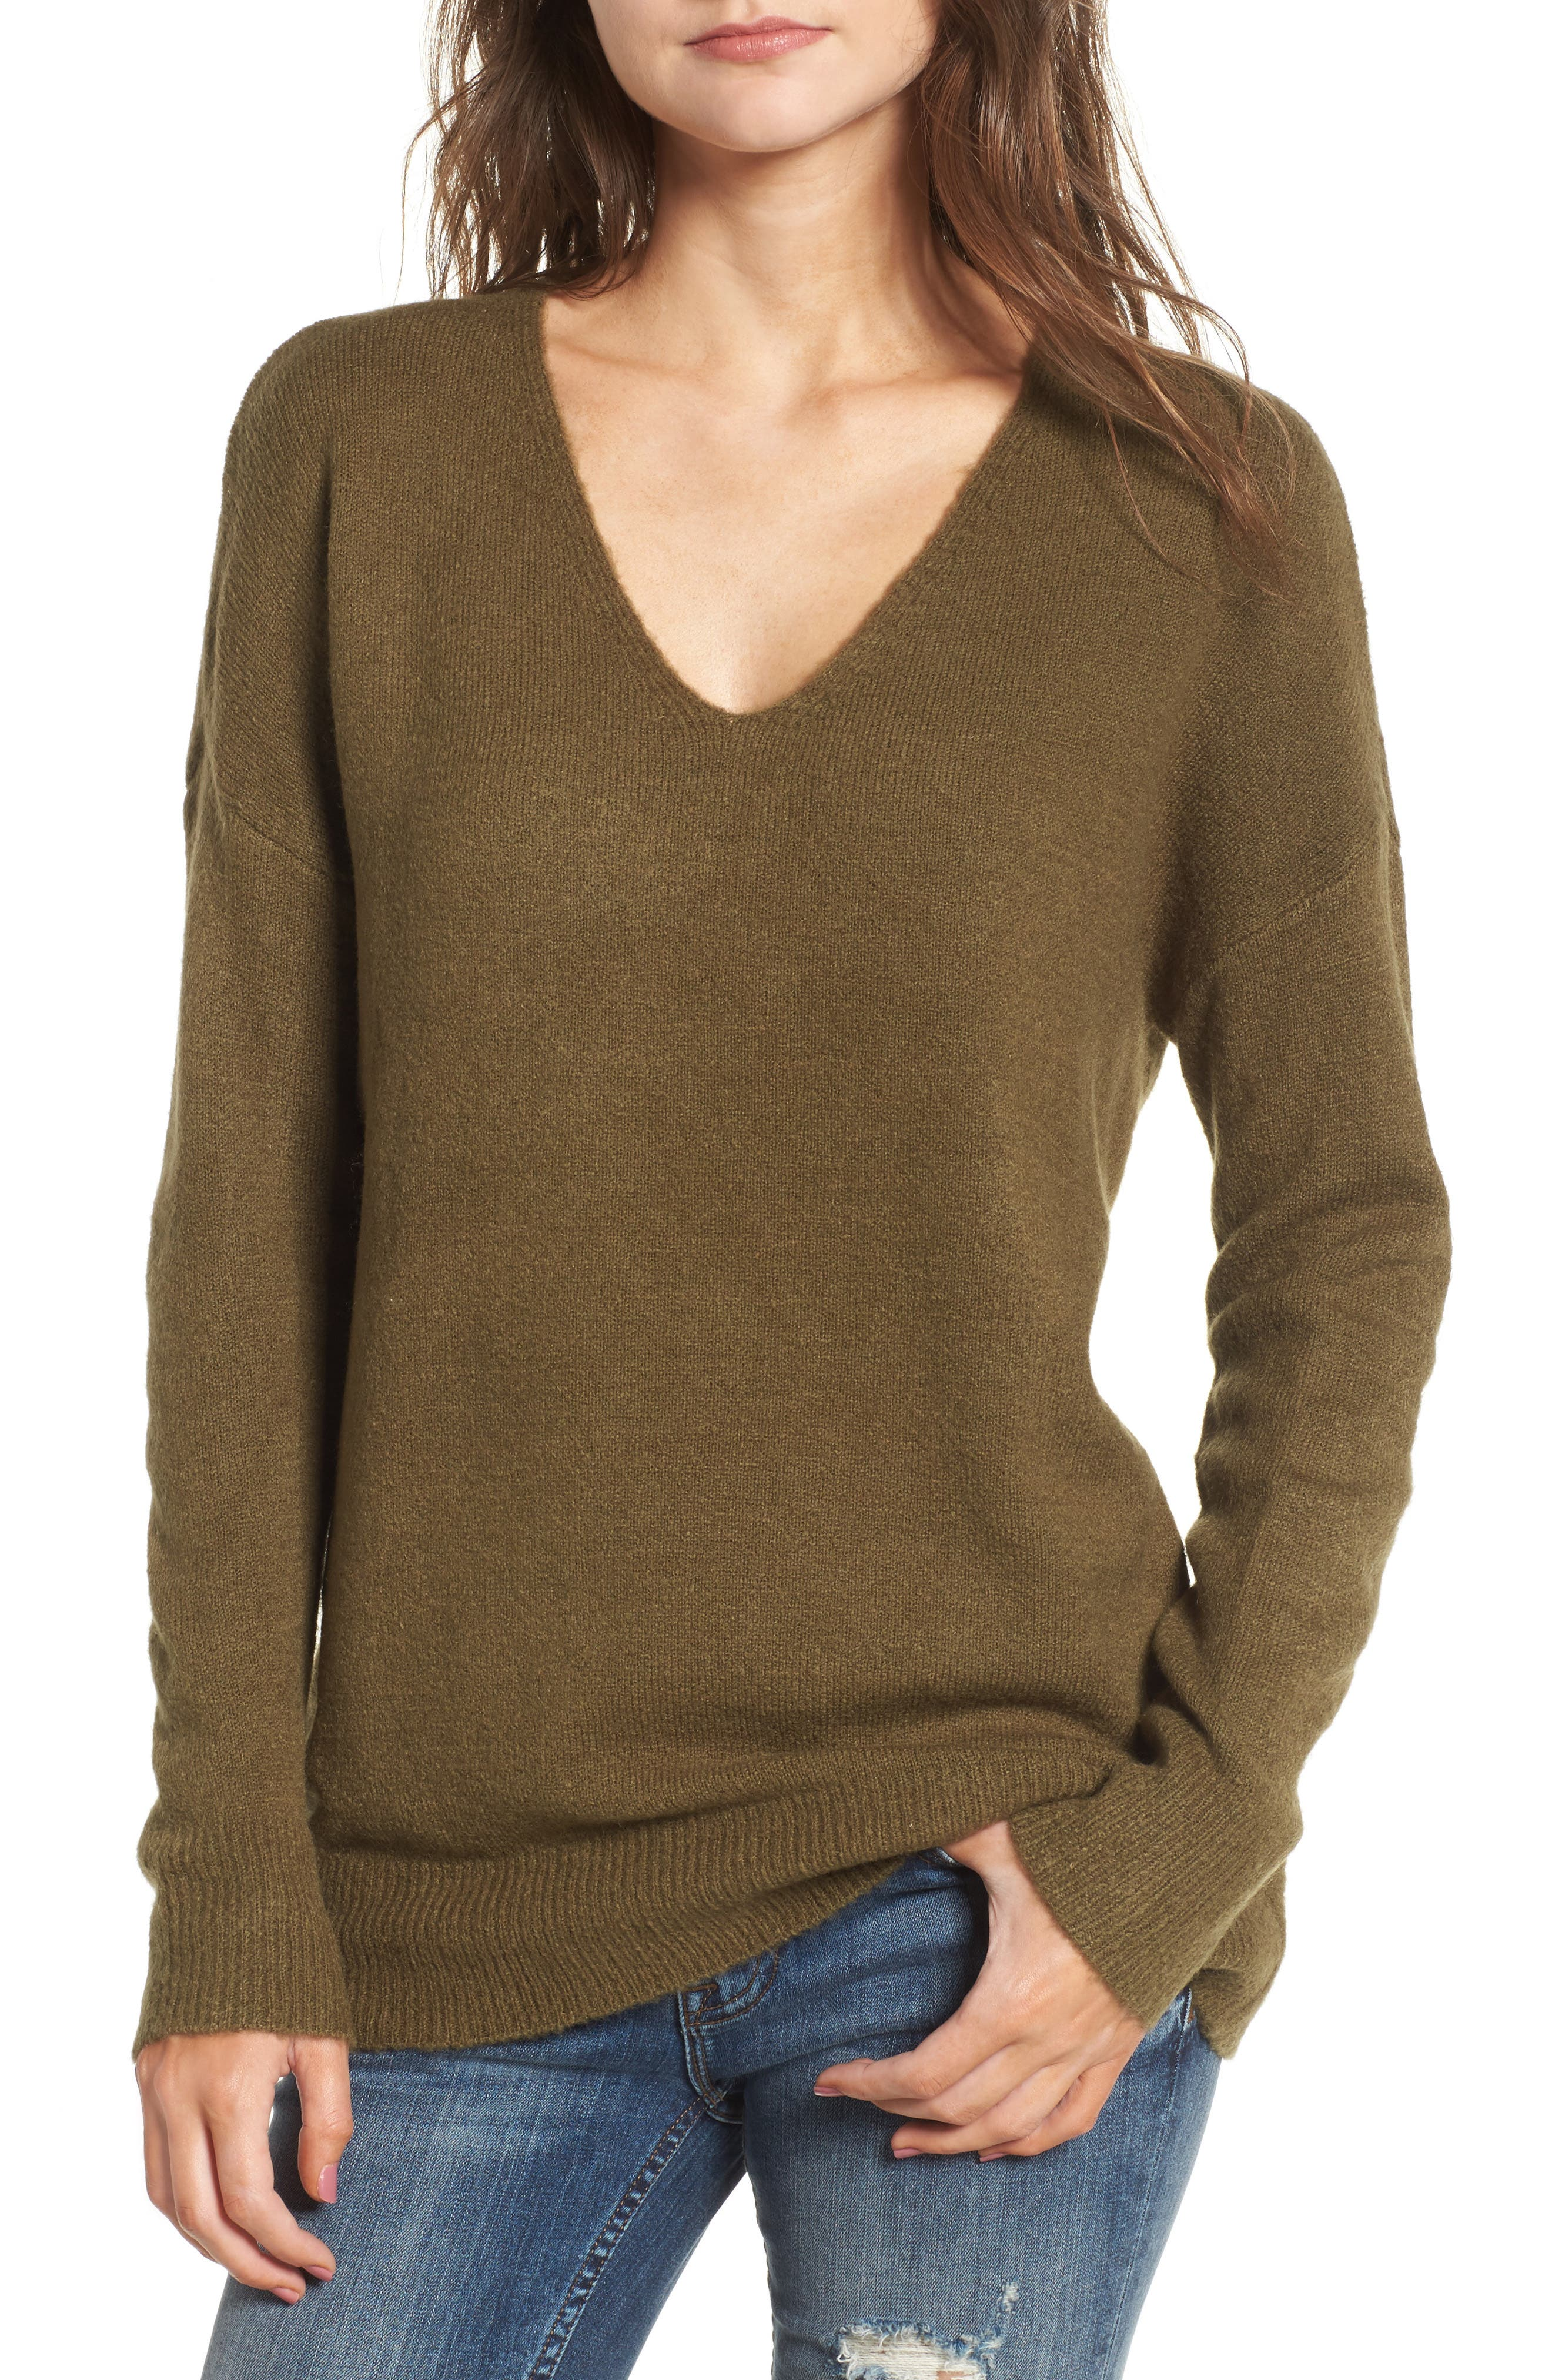 DREAMERS BY DEBUT,                             V-Neck Sweater,                             Main thumbnail 1, color,                             310